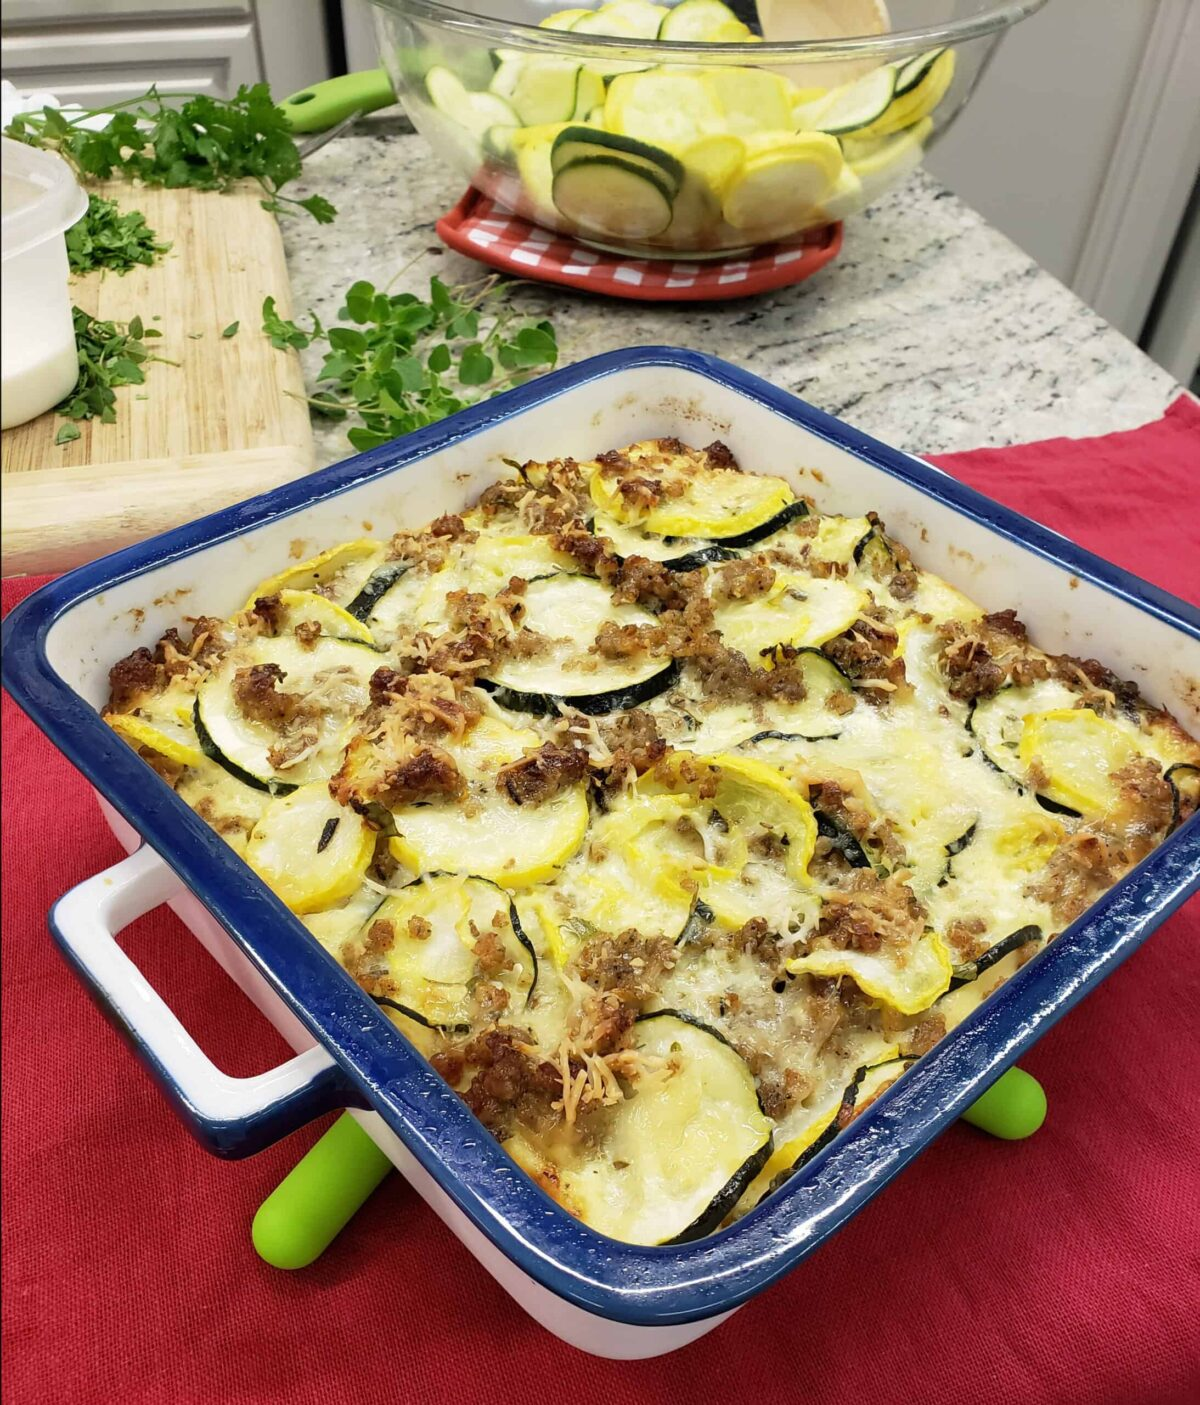 Sausage squash casserole in blue rimmed square casserole on green silicone trivet. Chopped herbs in background